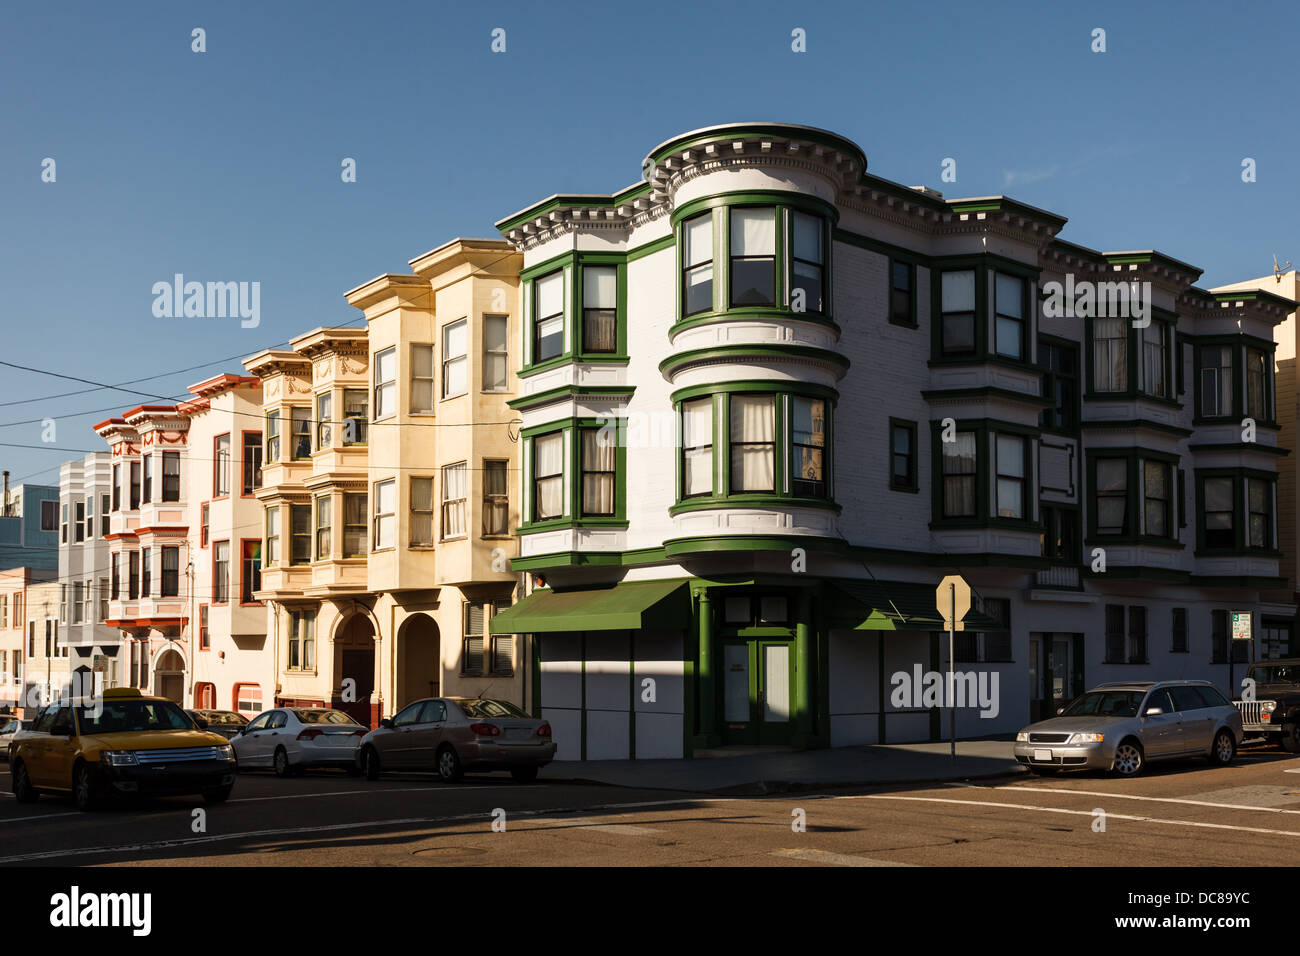 Corner of a pretty neighborhood street in San Francisco with three story apartment houses with bay windows - Stock Image